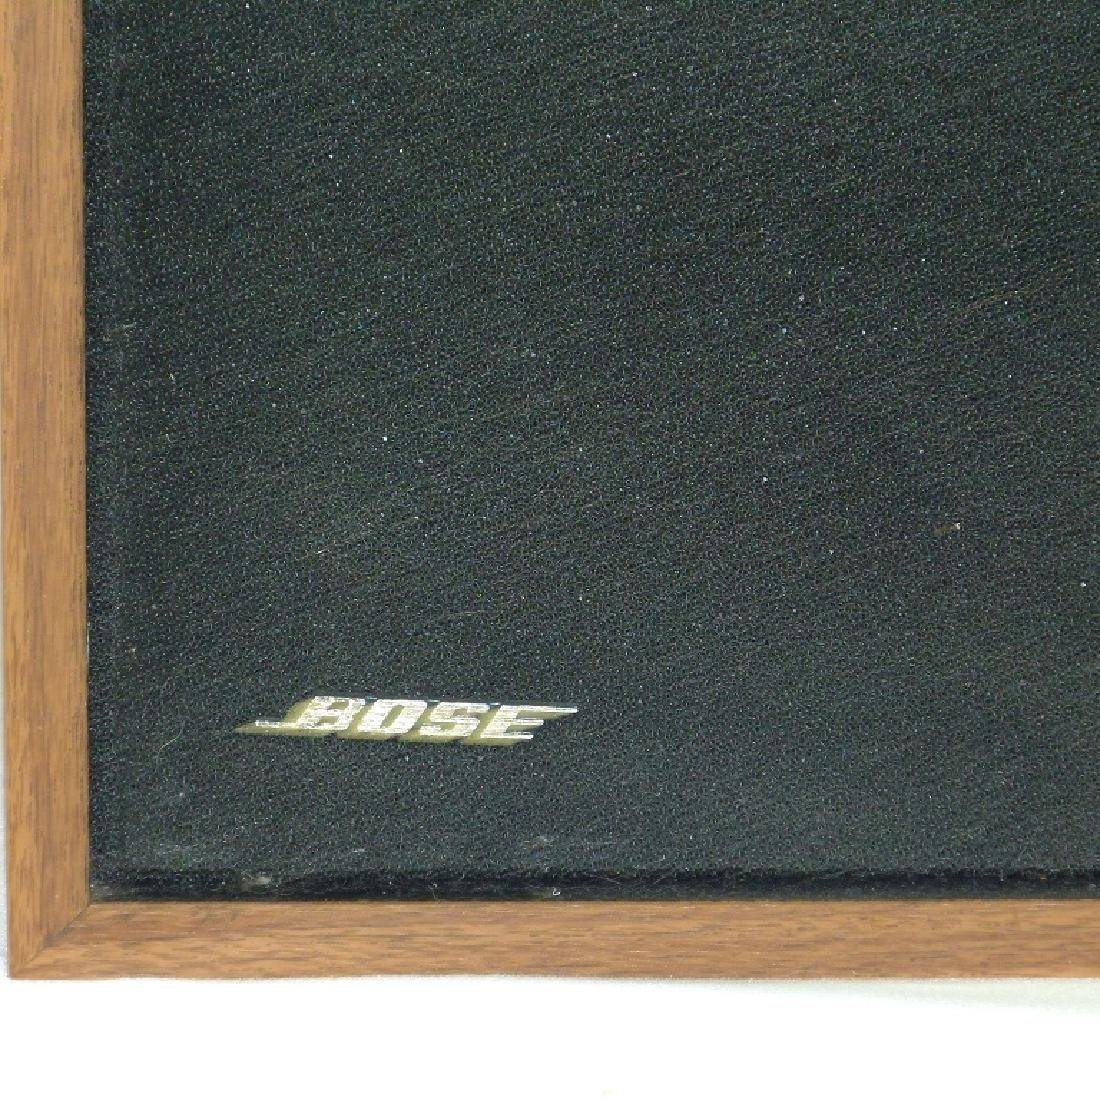 BOSE 301 SPEAKERS, C. 1970/80 - 7